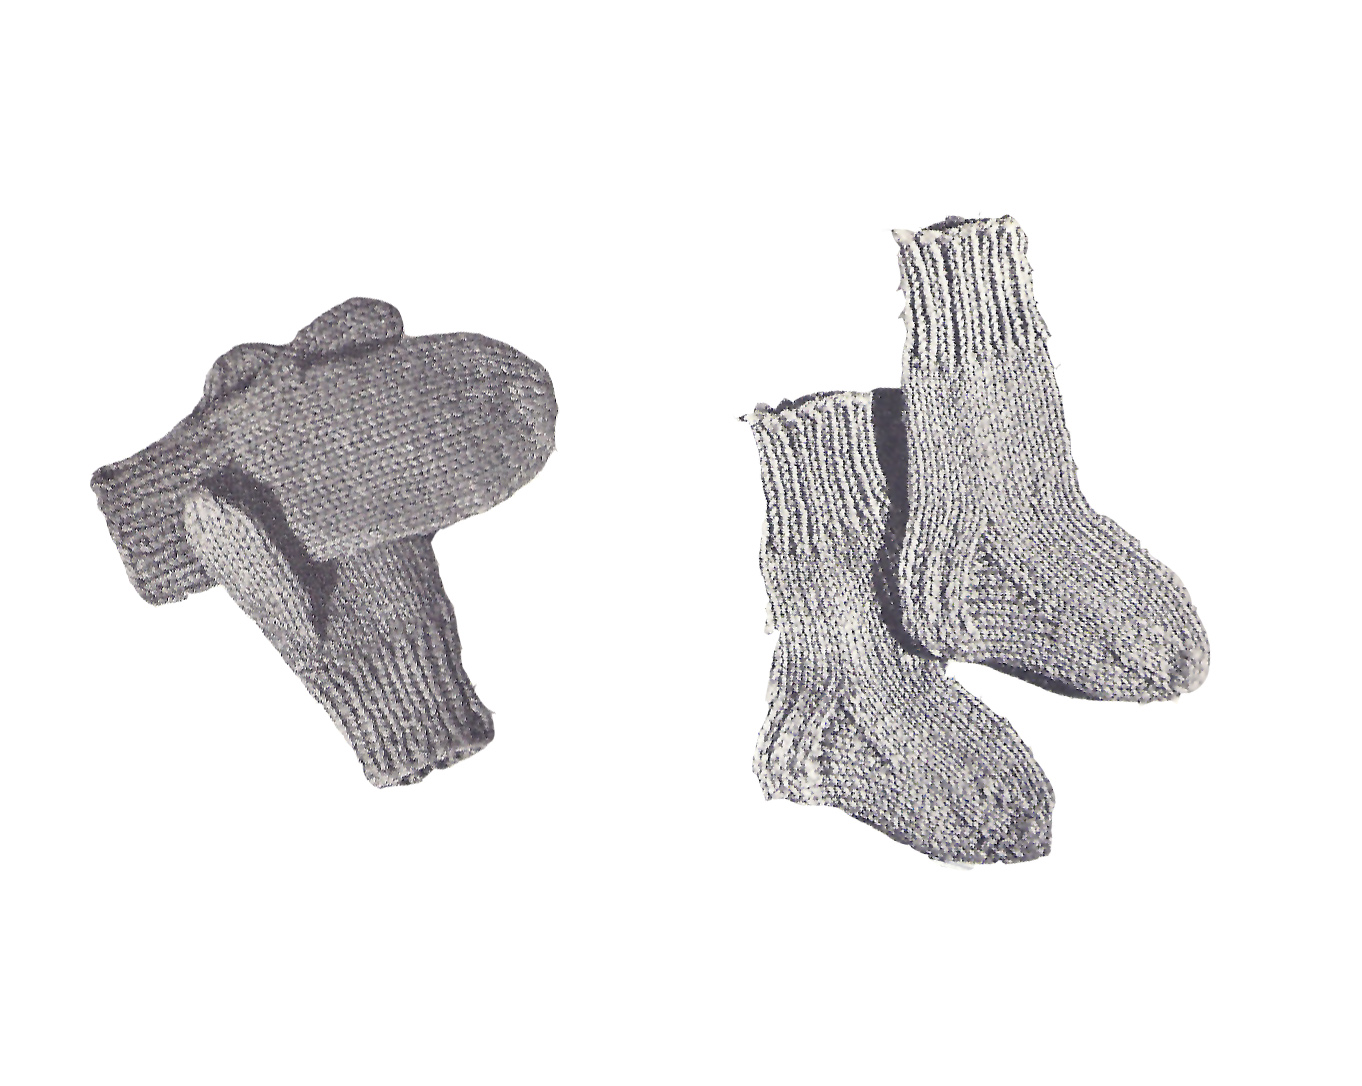 Red Heart Knitting Pattern Mittens : Vintage Knit Crochet Pattern Shop: Accessories to Knit ...